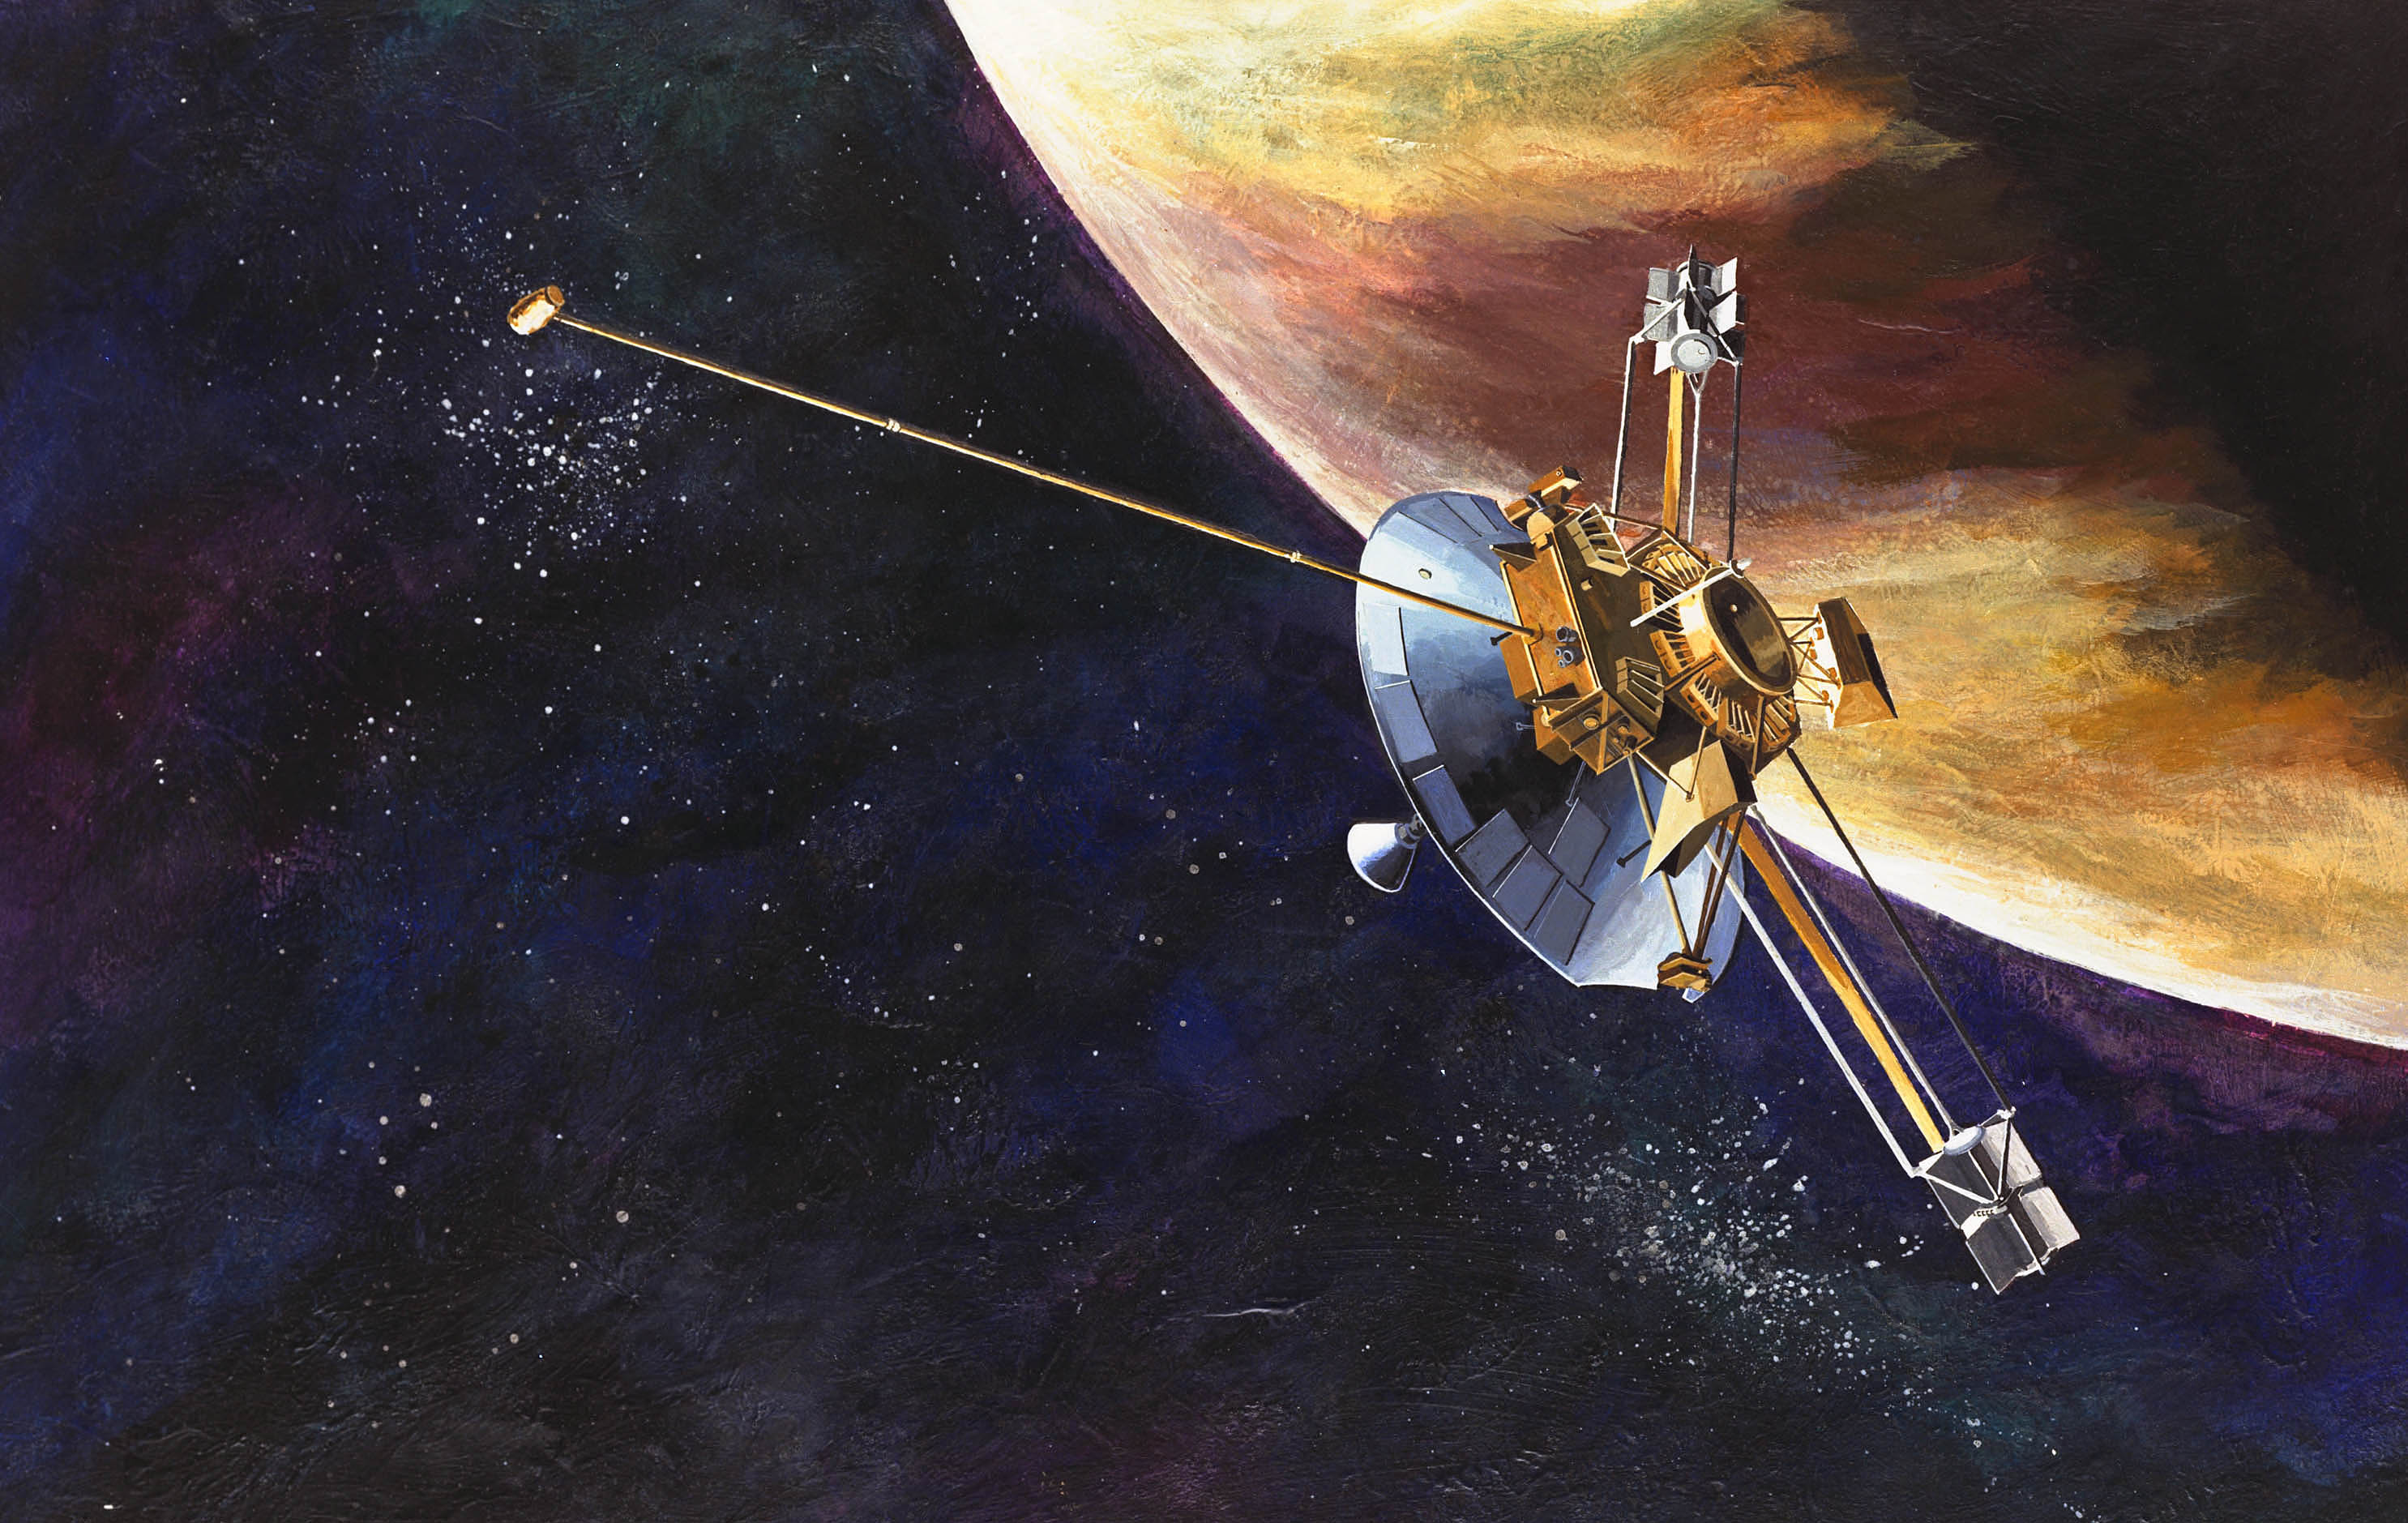 nasa pioneer 1 rocket - photo #6